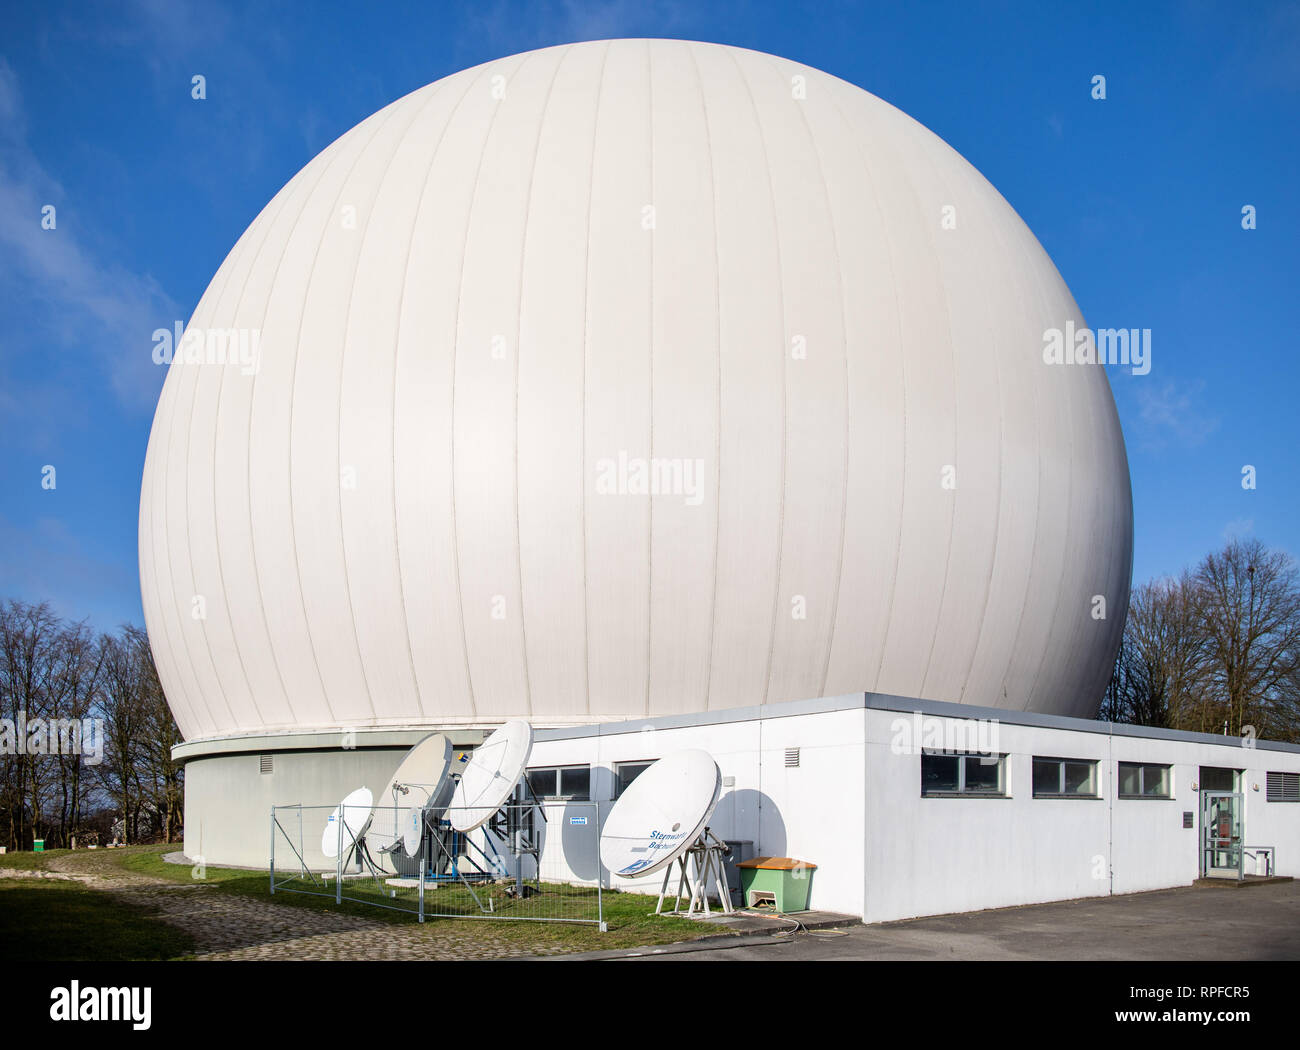 Bochum, Germany. 19th Feb, 2019. The Bochum observatory with the radar dome. With the commissioning of a travelling satellite, the observatory in Bochum celebrates a milestone in amateur radio. Qatar OSCAR-100, or QO-100 for short, is said to be the world's first satellite to use the non-commercial amateur radio service that rotates with the Earth instead of orbiting it. (to dpa: 'Sparks like an astronaut: first travelling satellite for amateurs' ) Credit: Marcel Kusch/dpa/Alamy Live News - Stock Image